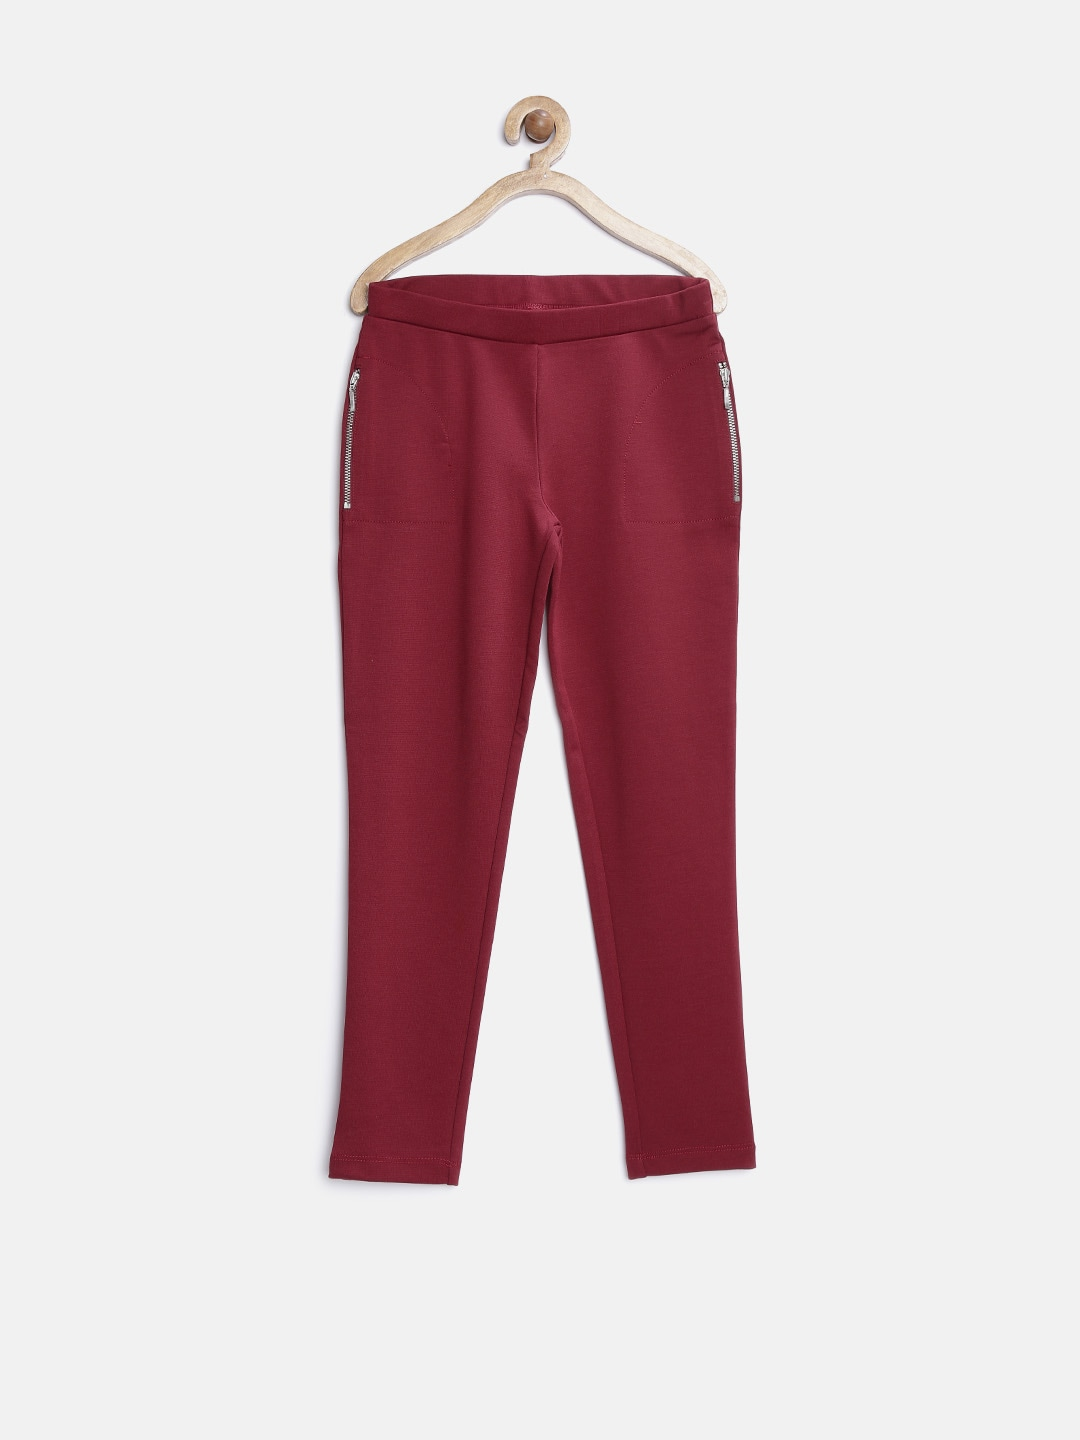 United Colors of Benetton Girls Maroon Jeggings